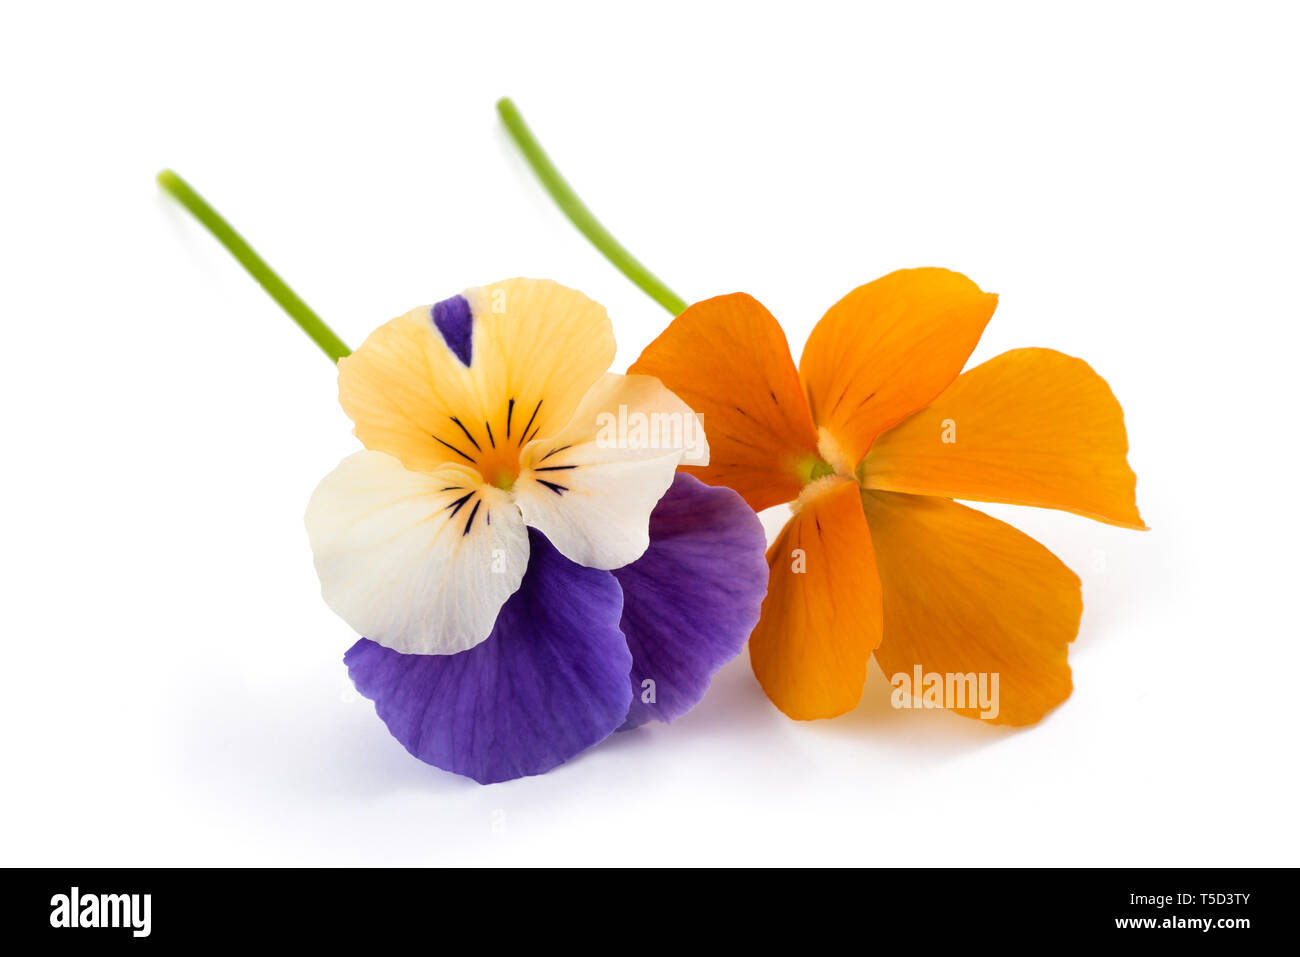 Pansy flowers isolated on white background - Stock Image